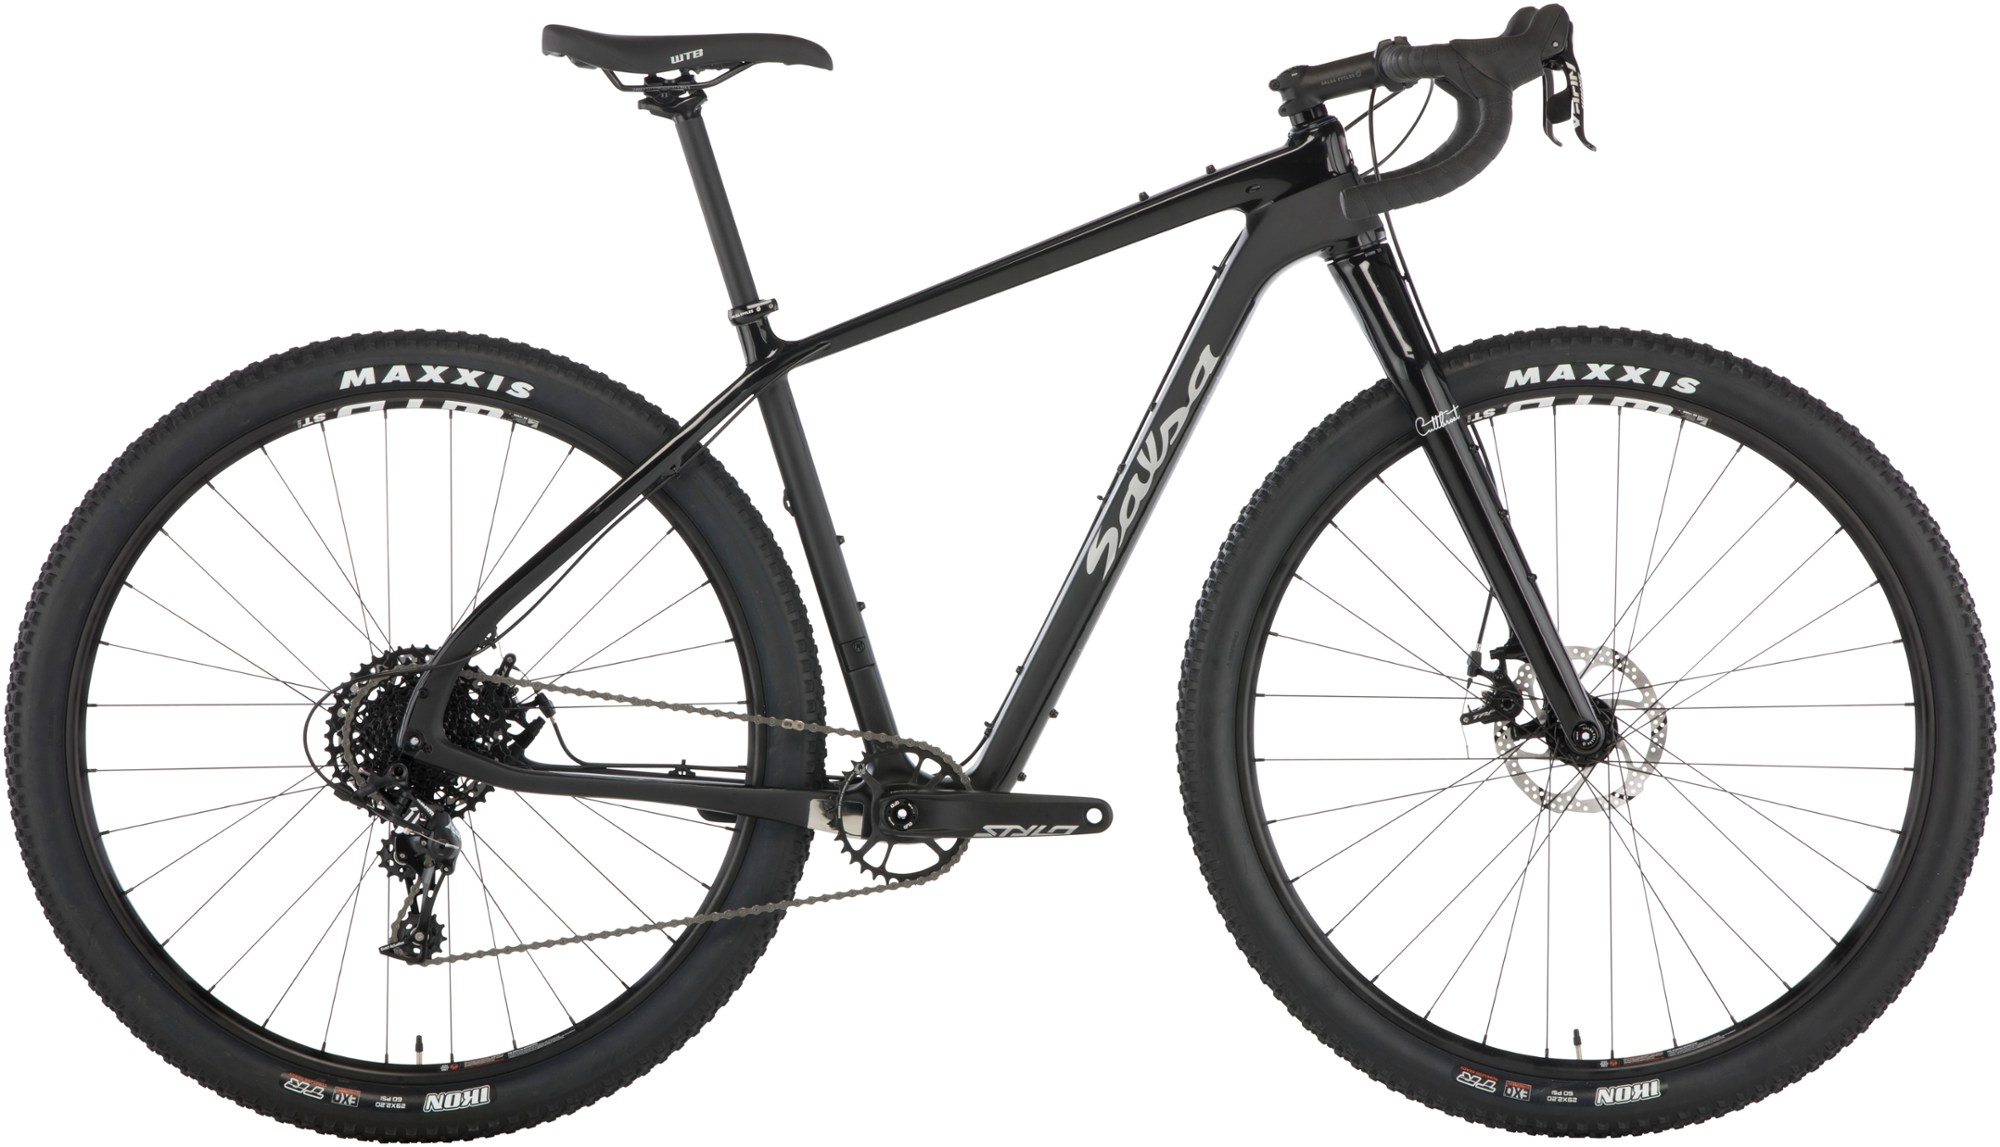 Salsa Cutthroat Carbon 3 Bike